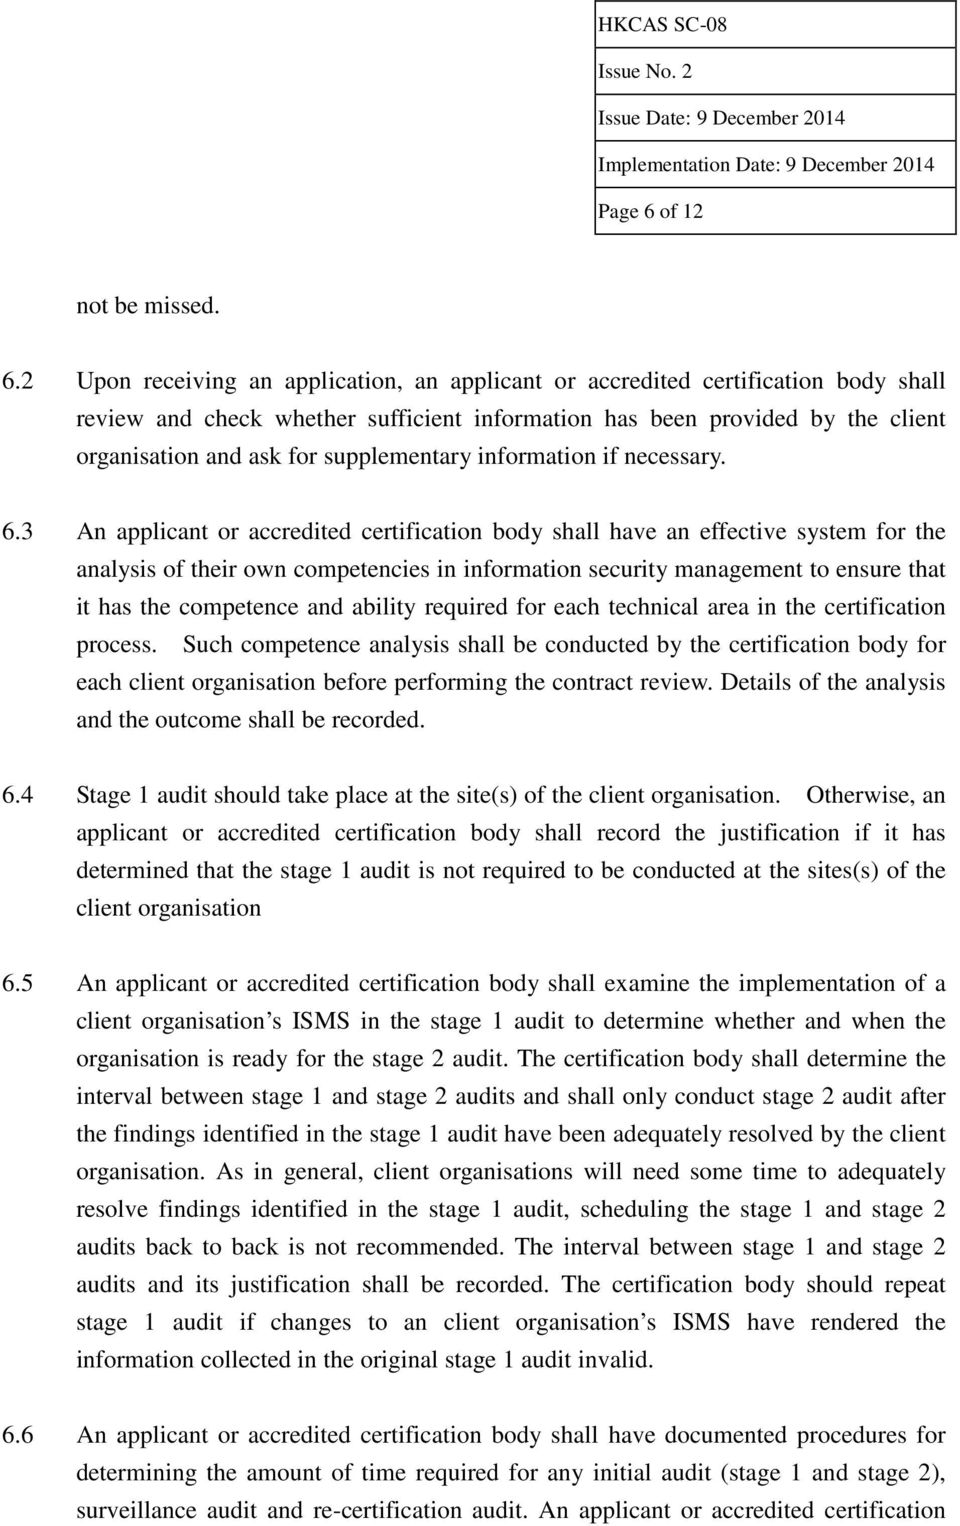 2 Upon receiving an application, an applicant or accredited certification body shall review and check whether sufficient information has been provided by the client organisation and ask for